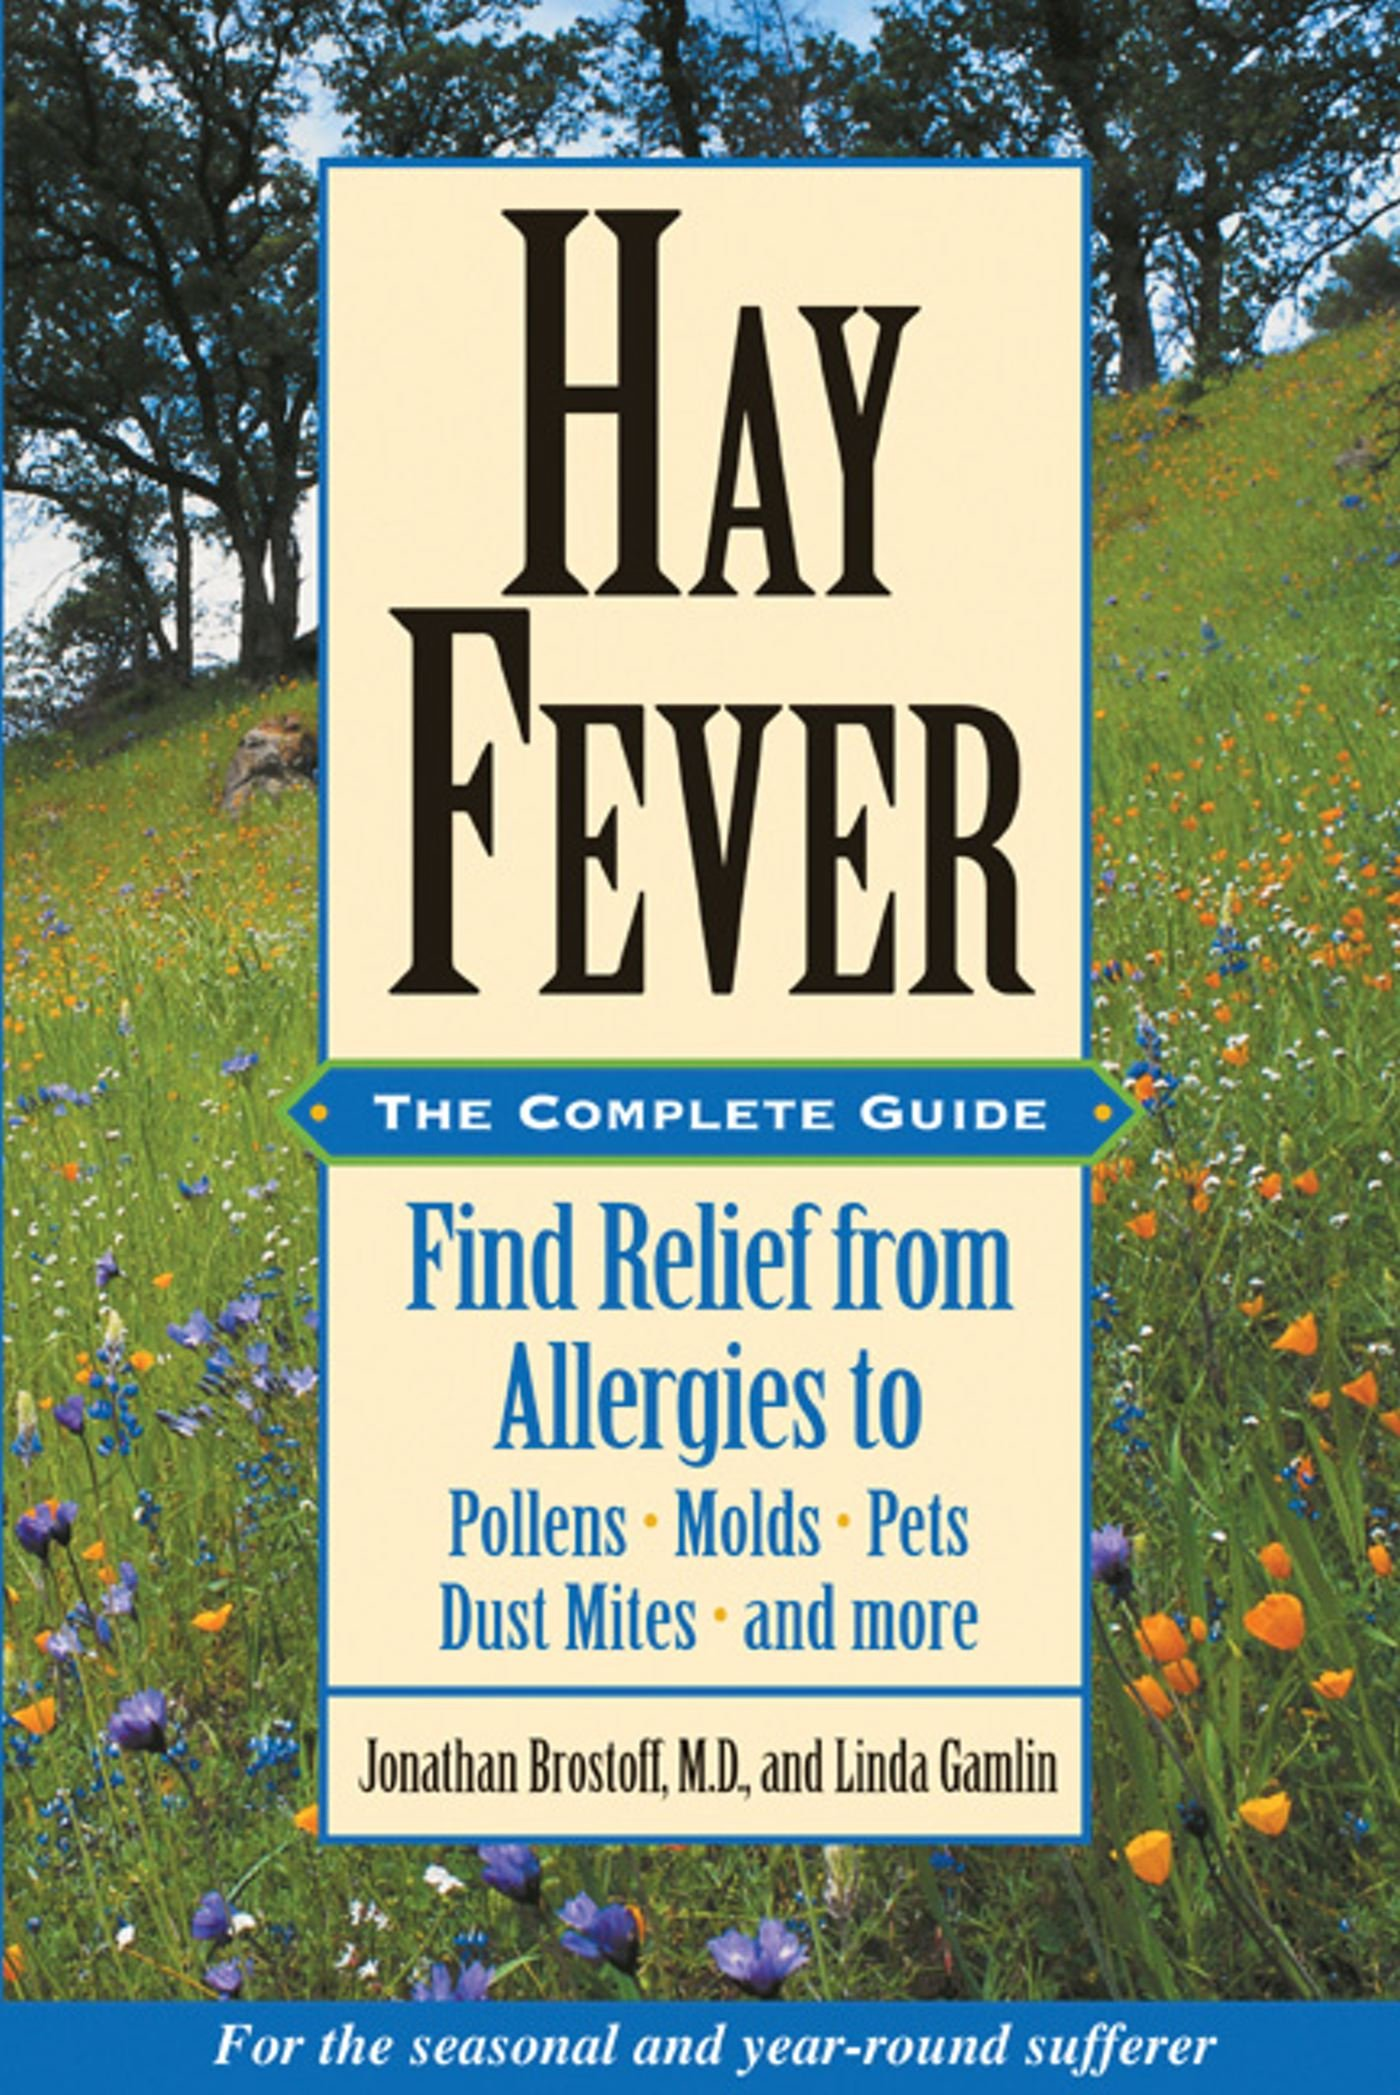 Hay Fever: The Complete Guide: Find Relief from Allergies to Pollens, Molds, Pets, Dust Mites, and more pdf epub